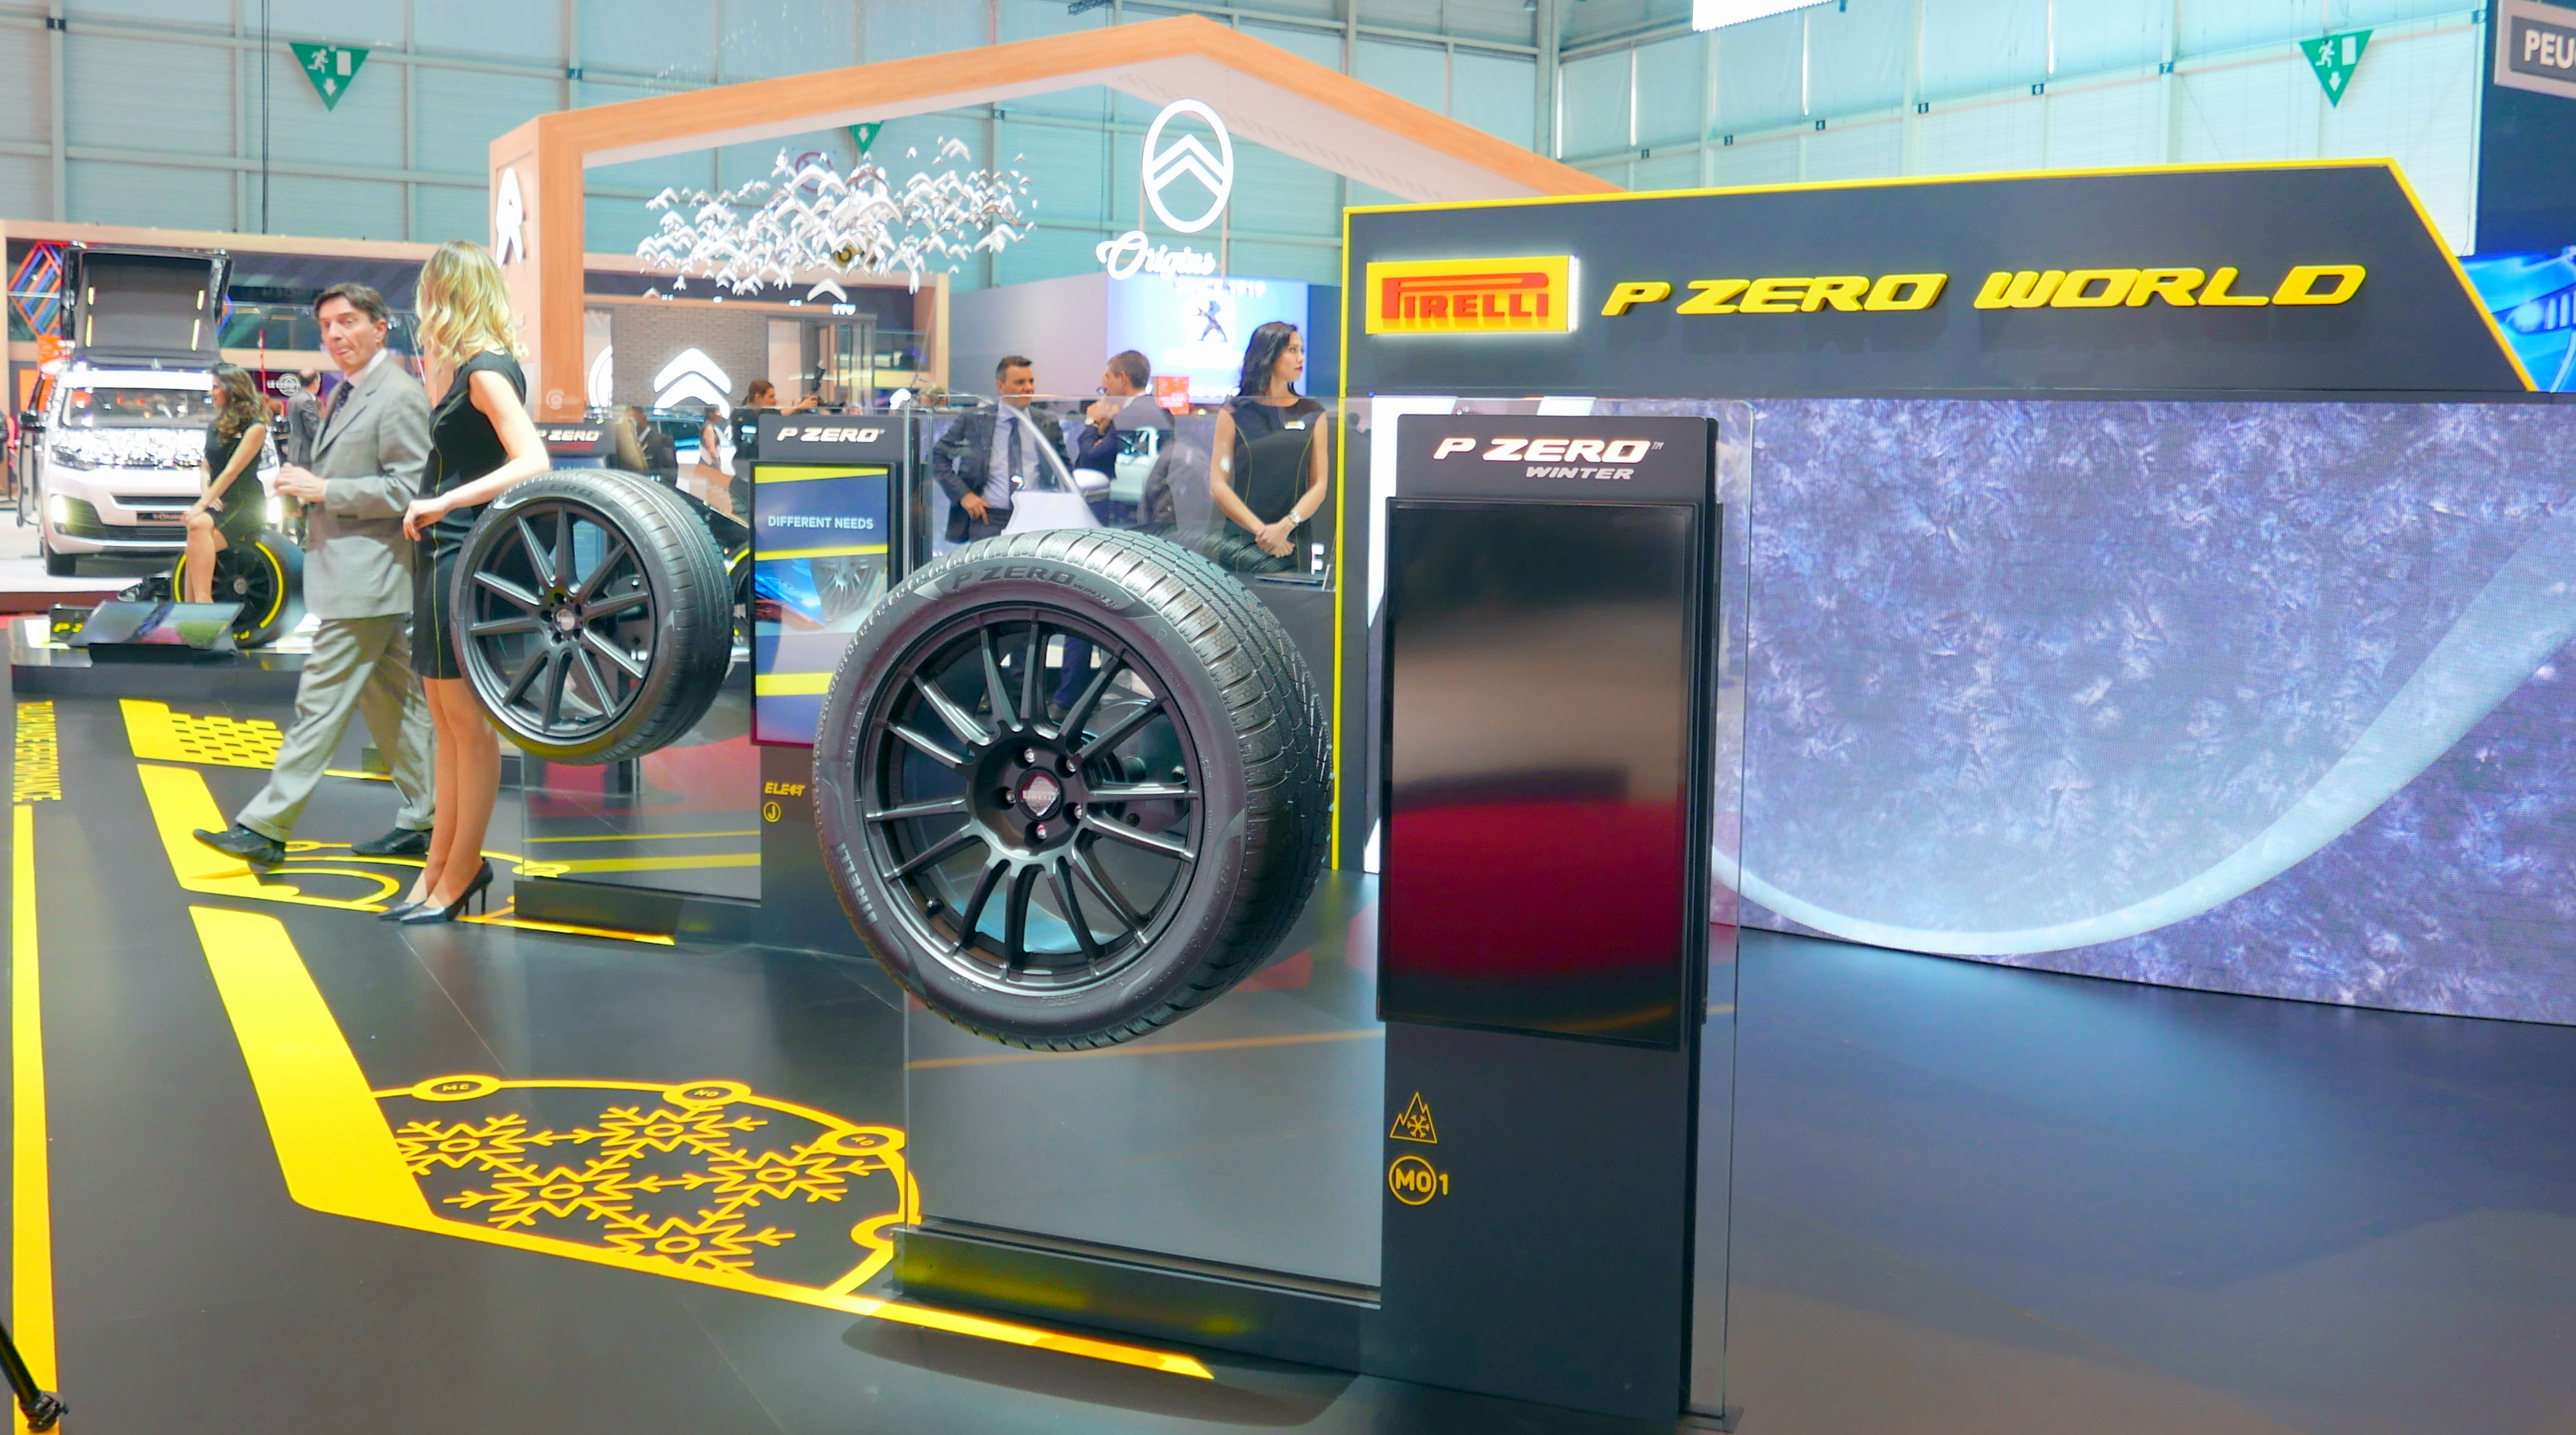 Flying Cars, High-Speed Winter Patterns and 'Hobby' Tires